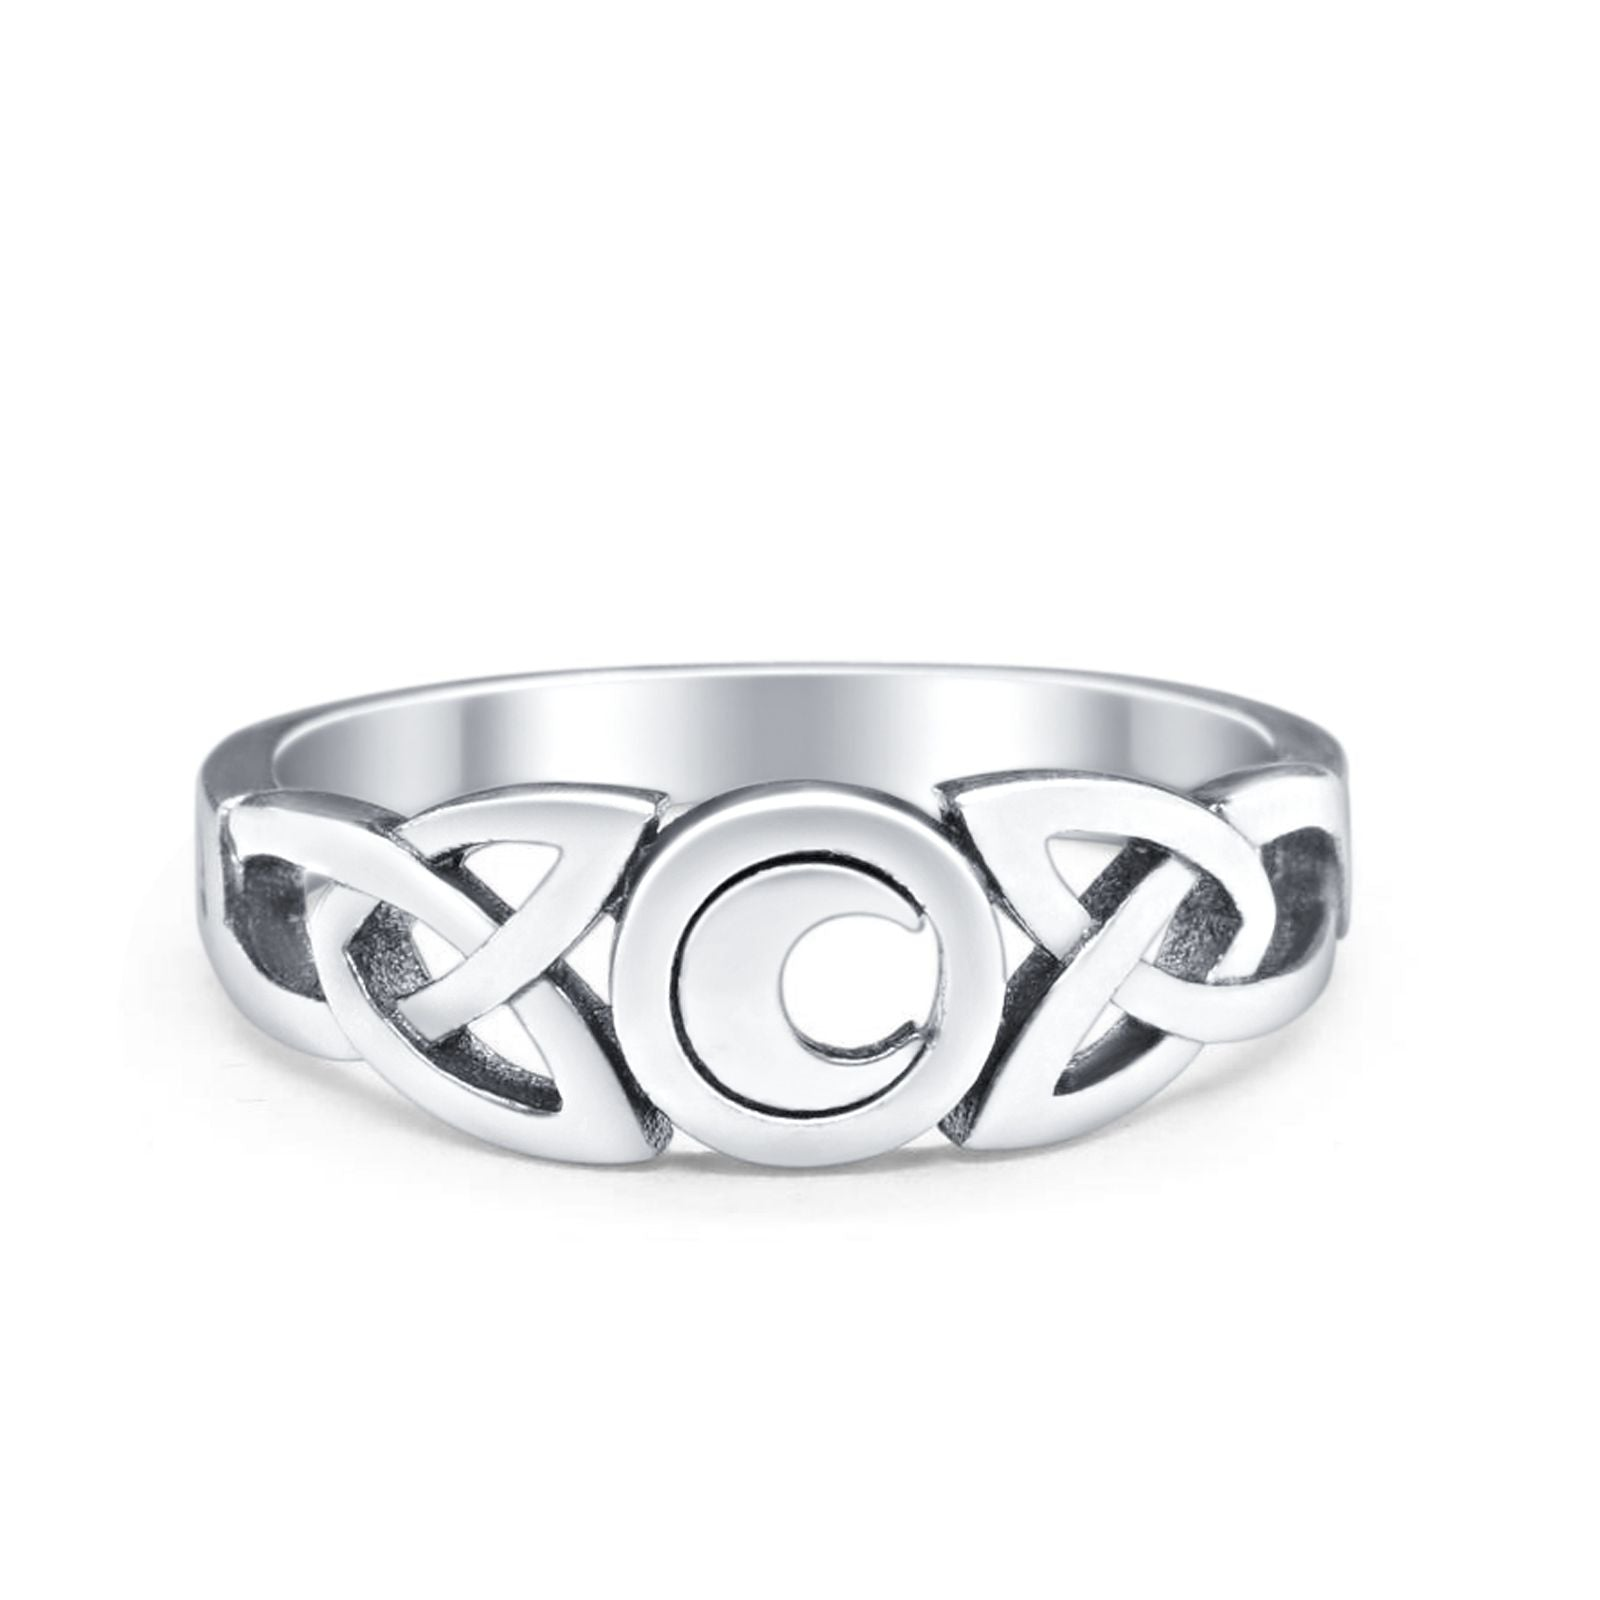 Celtic Moon Plain Ring Band Round 925 Sterling Silver